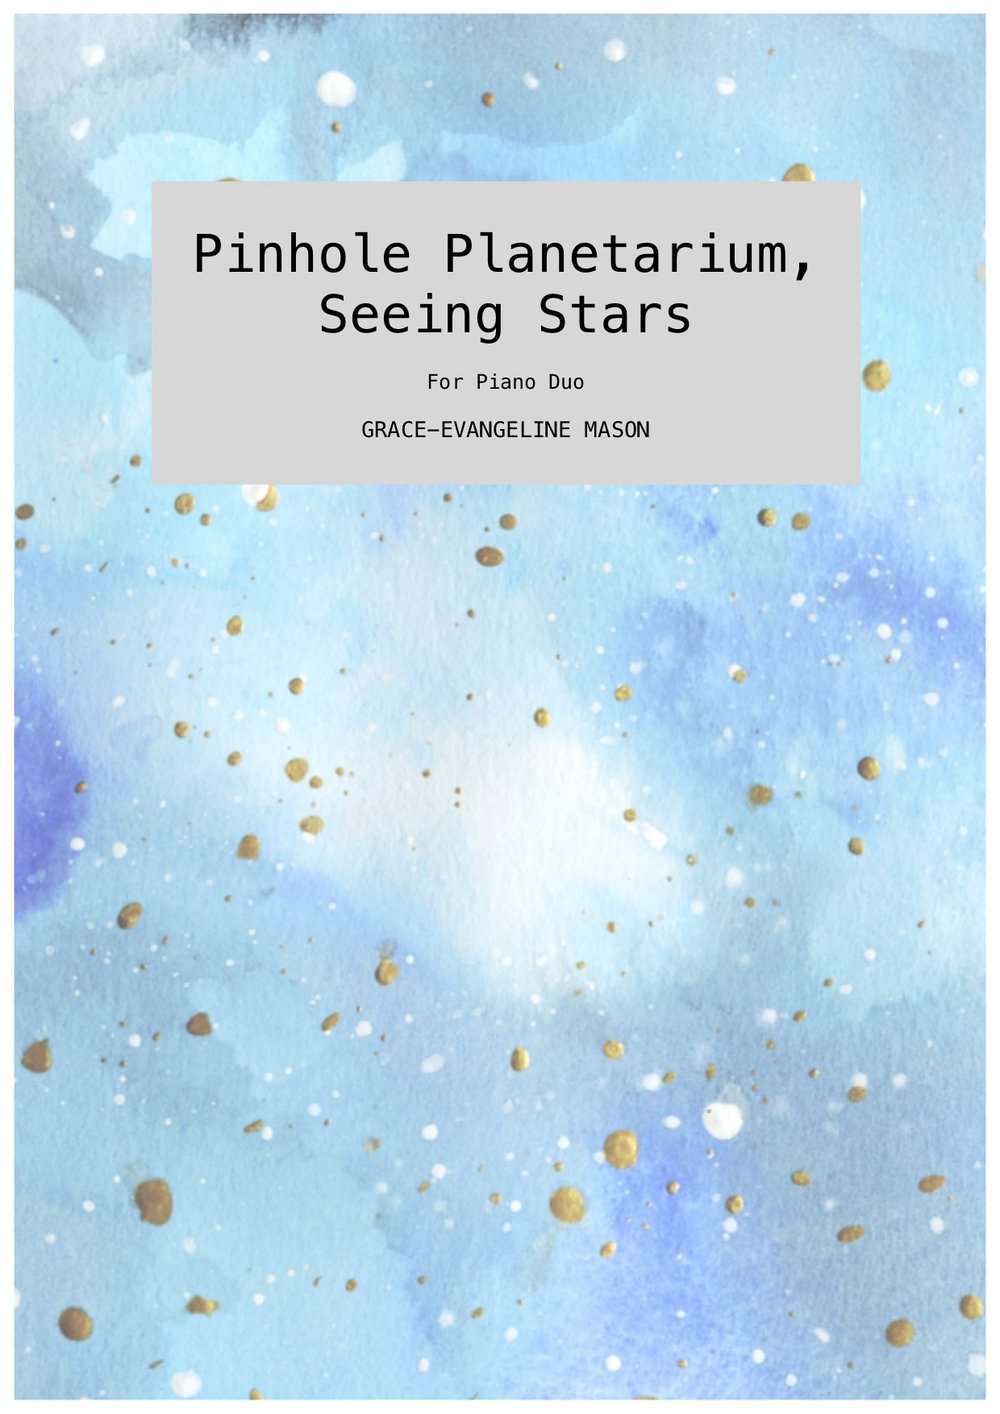 'Pinhole Planetarium, Seeing Stars' (2018) - for piano duoApprox. Duration: 5''Pinhole Planetarium, Seeing Stars (2018) is a work for piano duo inspired by the installation by artist Dianne Bos entitled 'Seeing Stars' (2003), which uses a pinhole camera with multiple 'lenses' to project a galaxy-shaped cluster of lights onto ground glass. The piece seeks to generate an ethereal soundworld created by the use of delicate fragments that follow the shape of five different constellations (Ursa Major, Ursa Minor, Orion, Taurus and Gemini) to inform the melodic pitch contours within the work.' ©G.E.M.2018©Cover Image: 'Planetarium' Painting by Grace-Evangeline Mason 2018